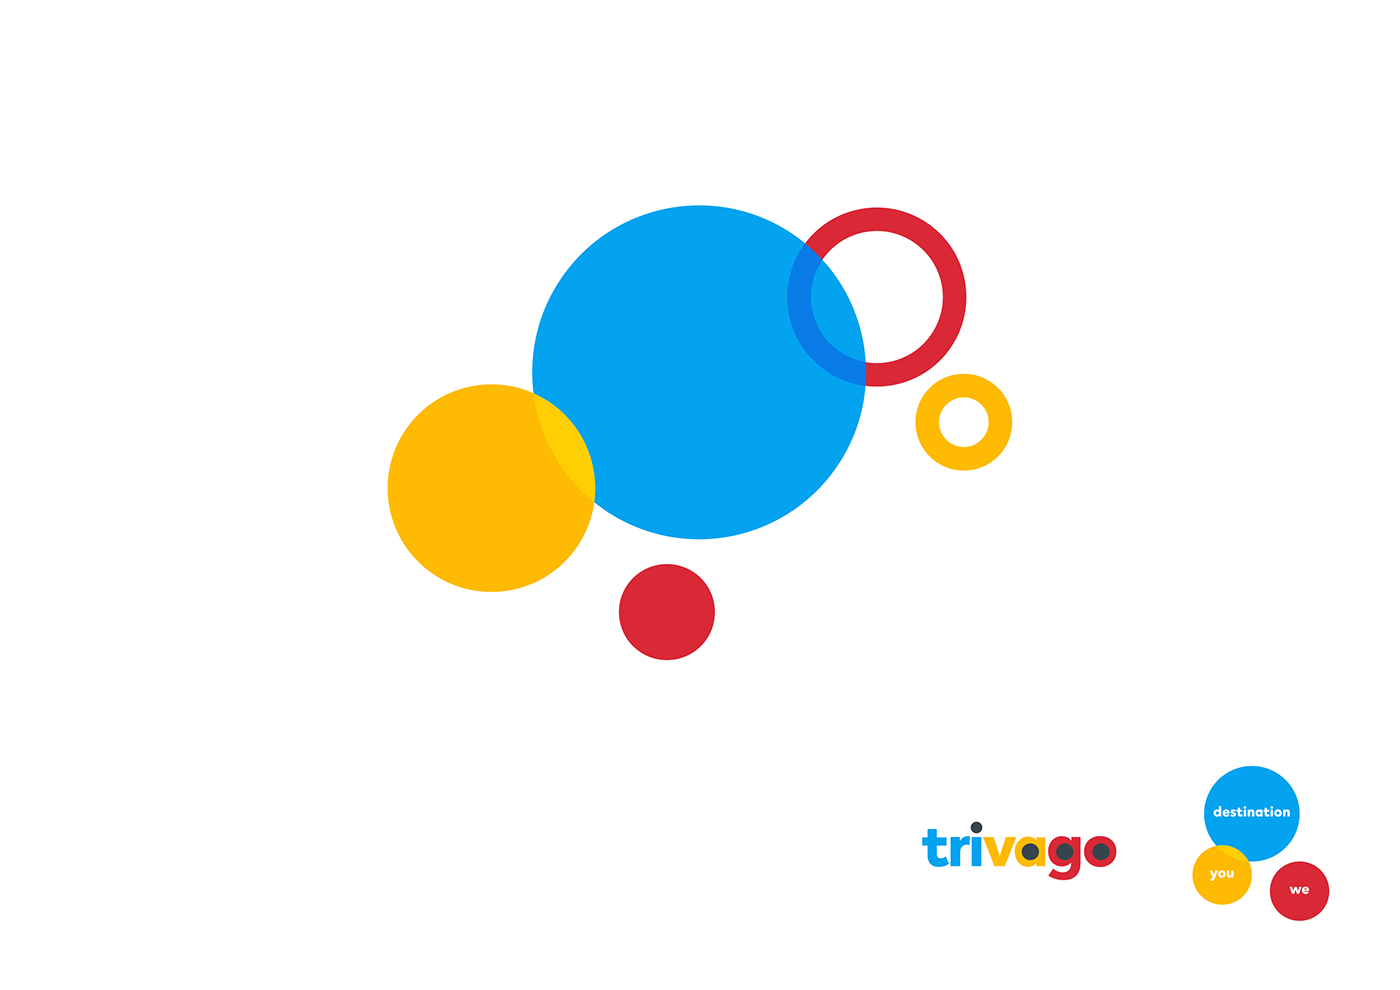 Thematically Images Are Connected To The Activities Trivago Provides Base For Like Traveling Holidays Or Business Trips